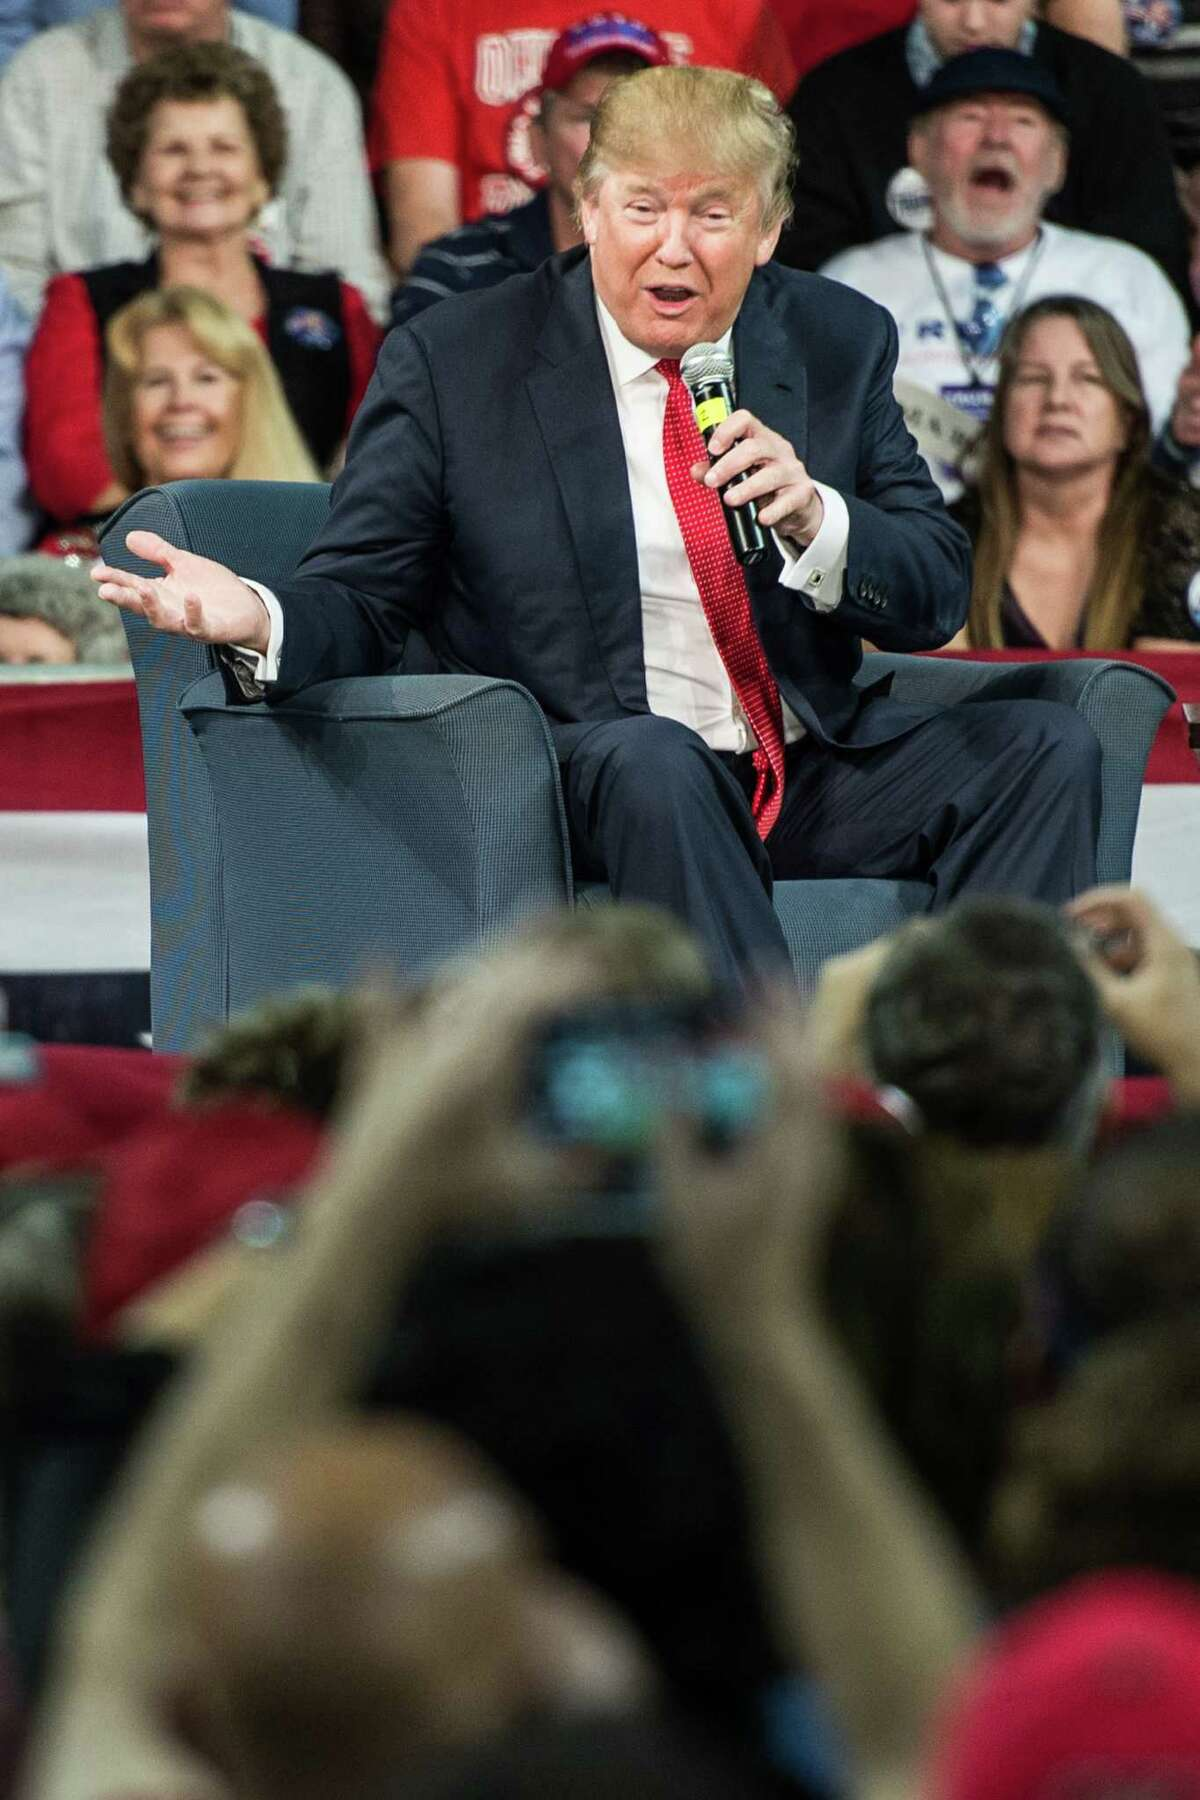 AIKEN, SC - DECEMBER 12: Republican presidential candidate Donald Trump speaks to the crowd at a town hall meeting December 12, 2015 in Aiken, South Carolina. The South Carolina Republican primary is scheduled for February 20, 2016. (Photo by Sean Rayford/Getty Images) ORG XMIT: 596207297